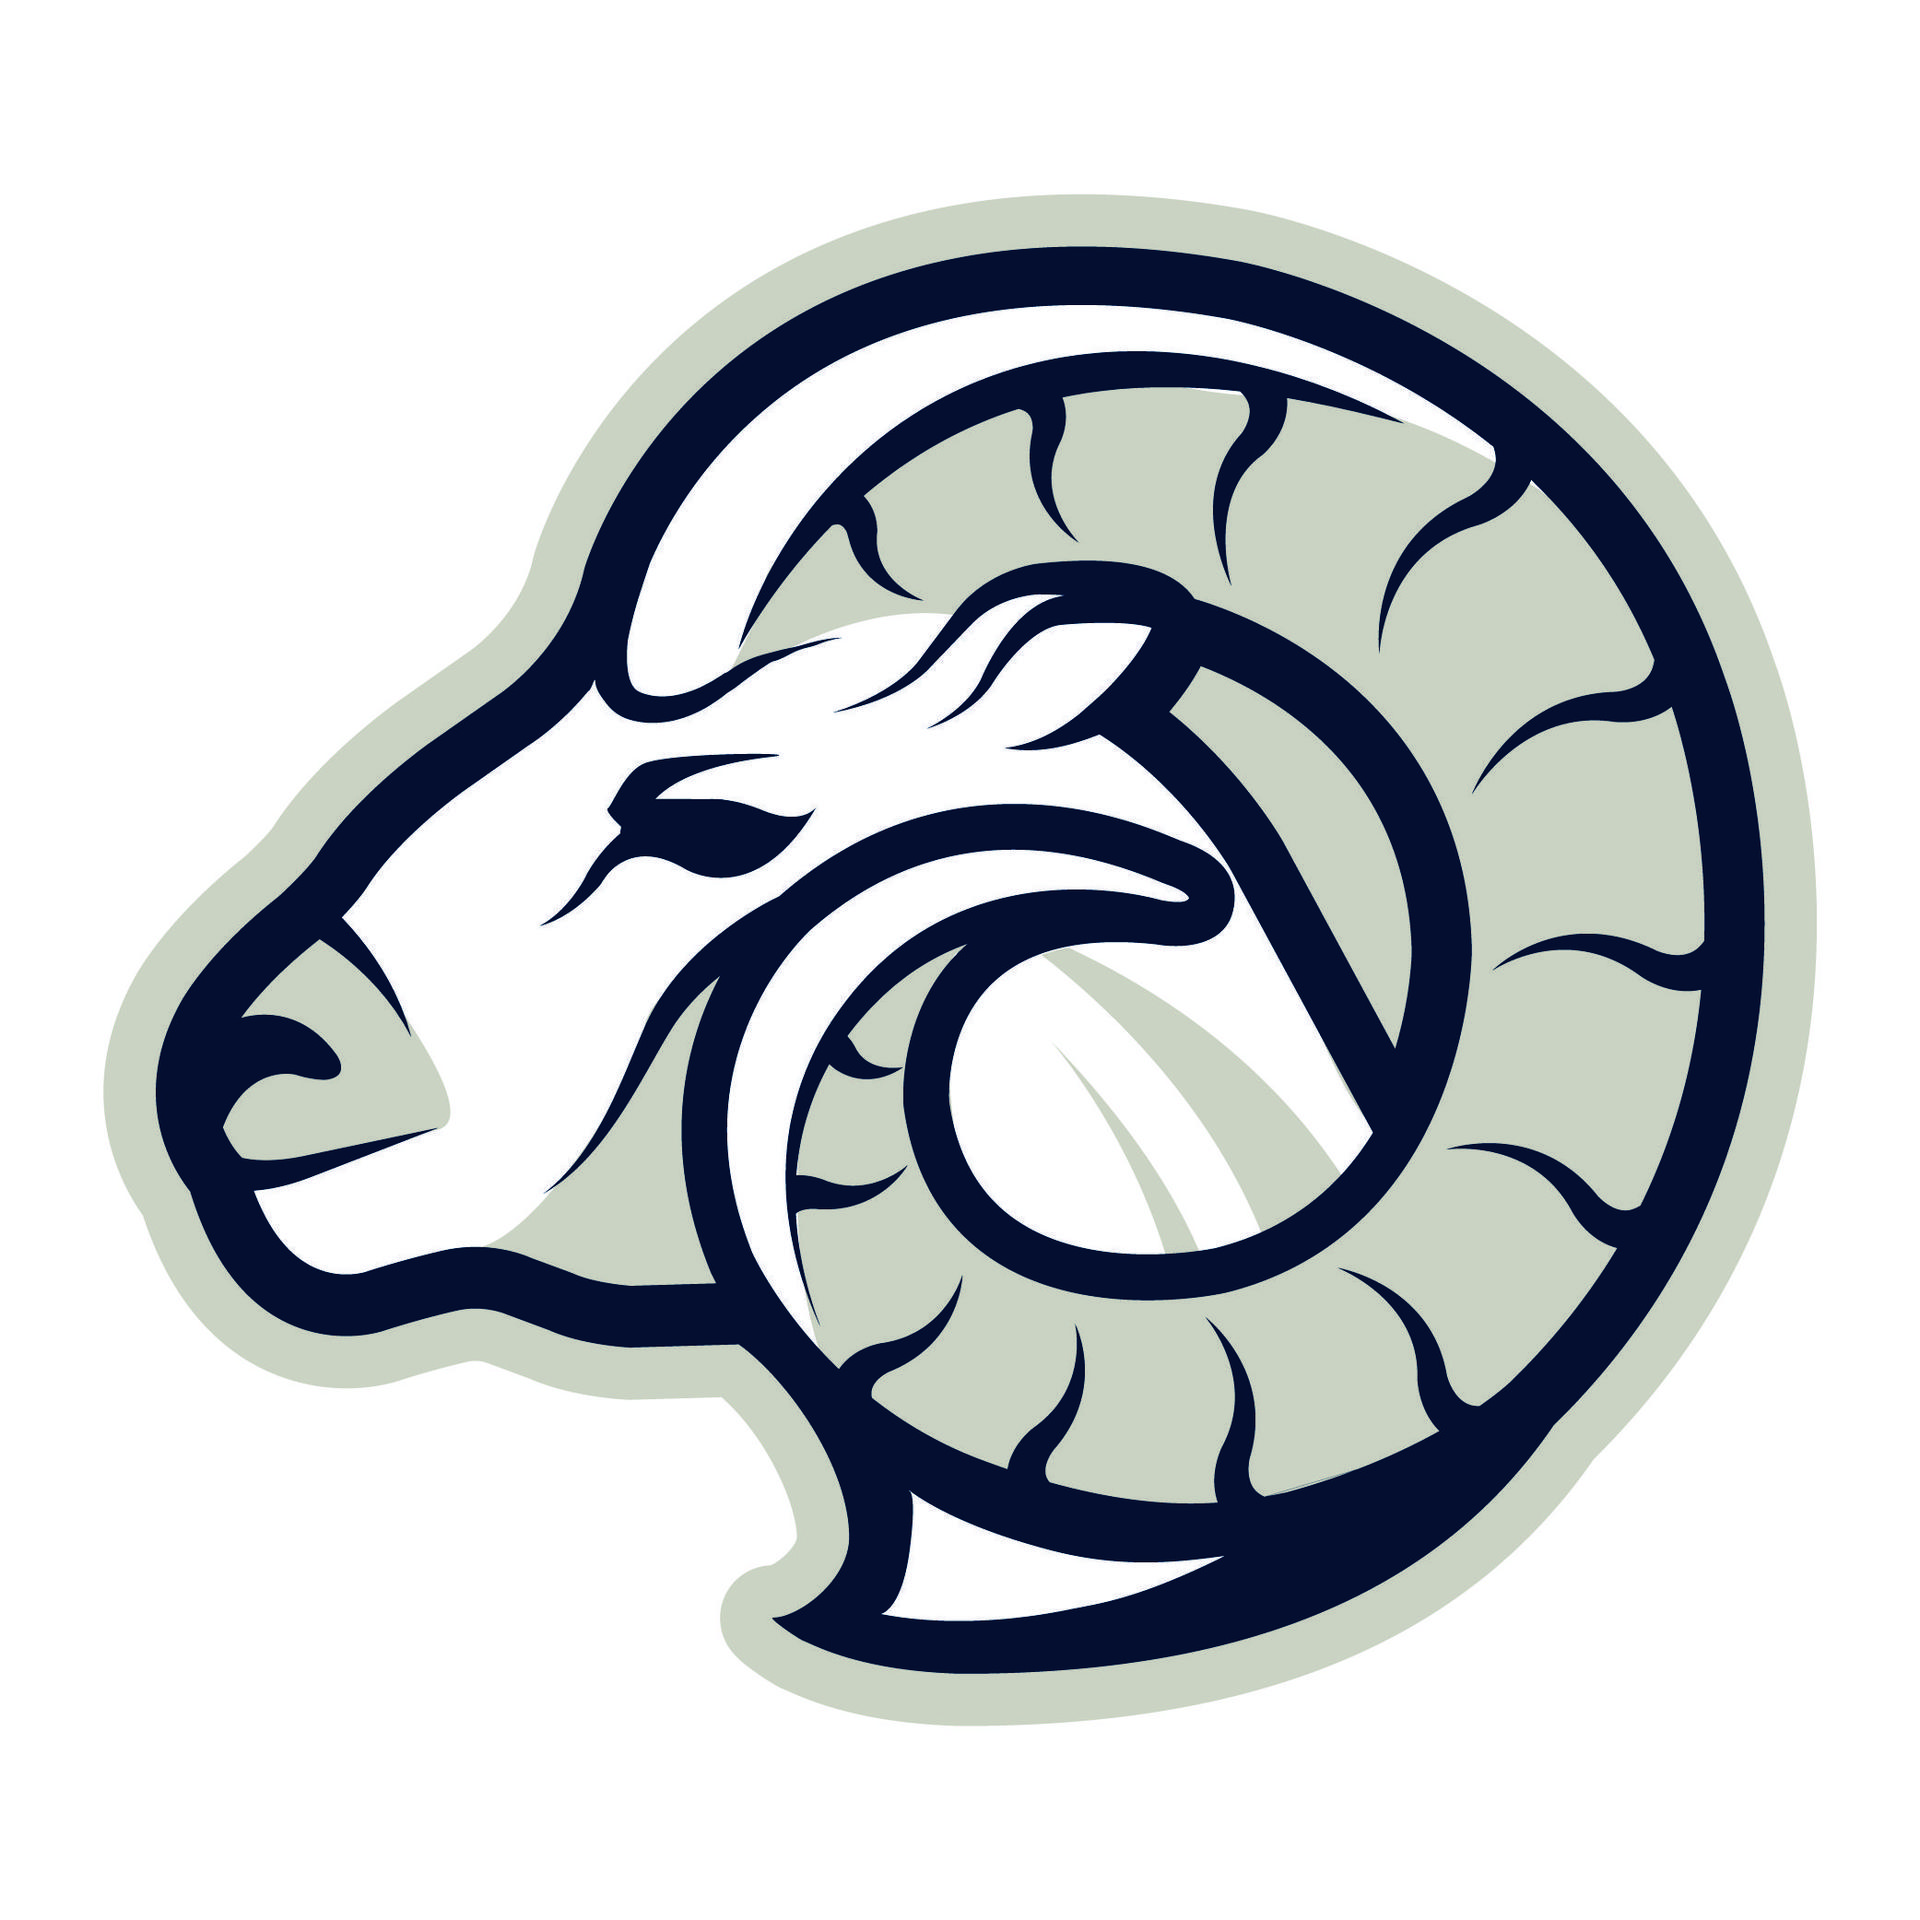 West Valley High School Mascot